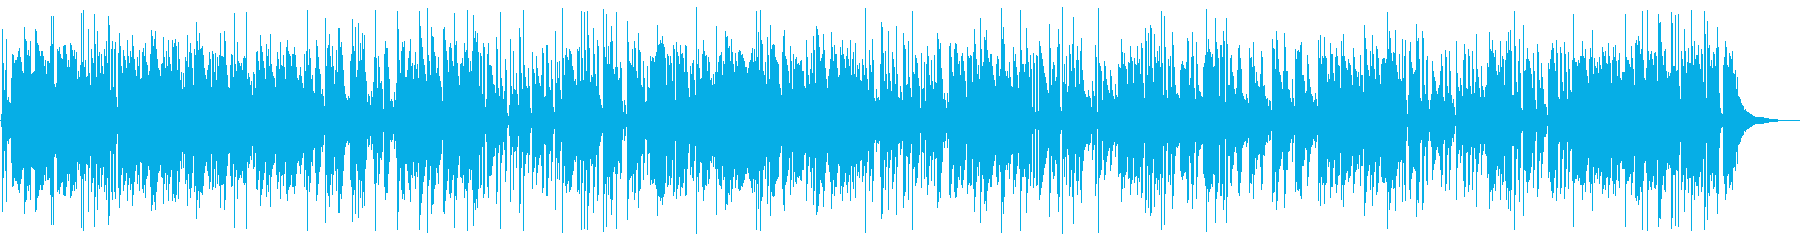 Datsun dance Bossa Nova arrangement's reproduced waveform